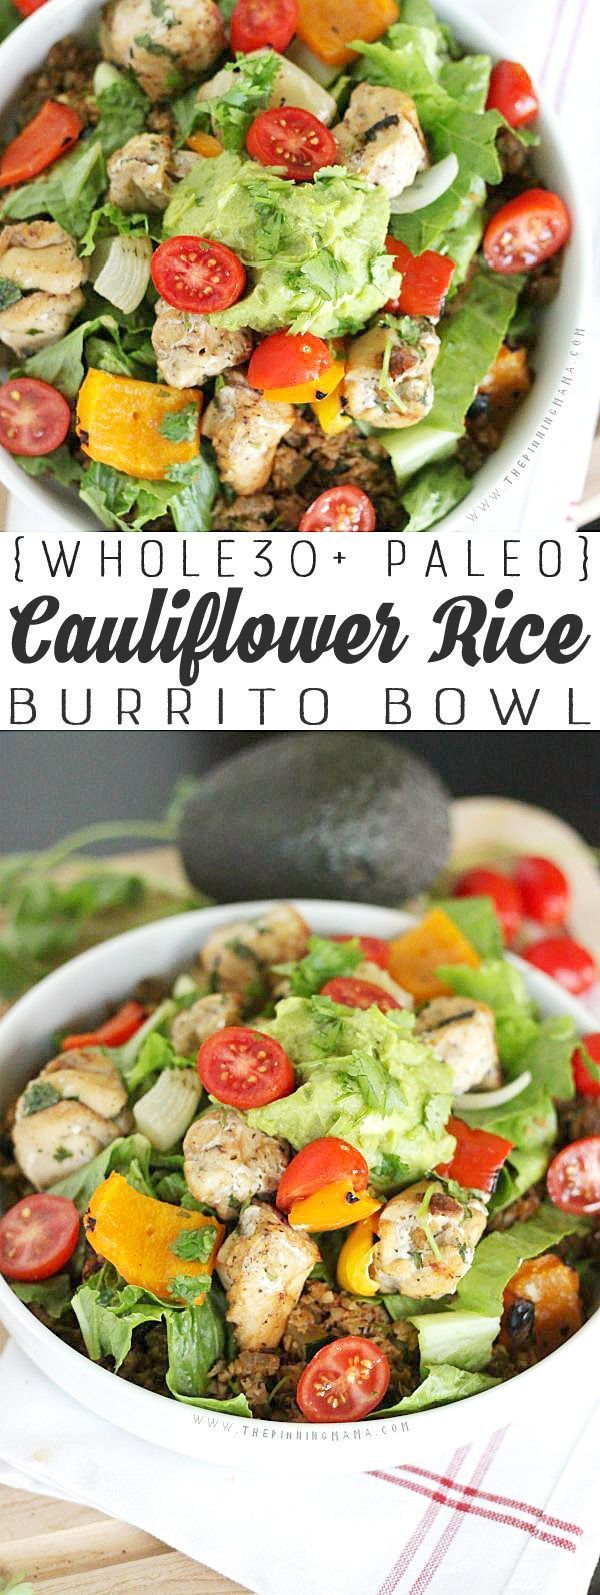 The best Whole30 Recipe YET! Fajita Burrito Bowls made with mexican cauliflower rice. Paleo, gluten free, dairy free, low carb recipe!  YUM!